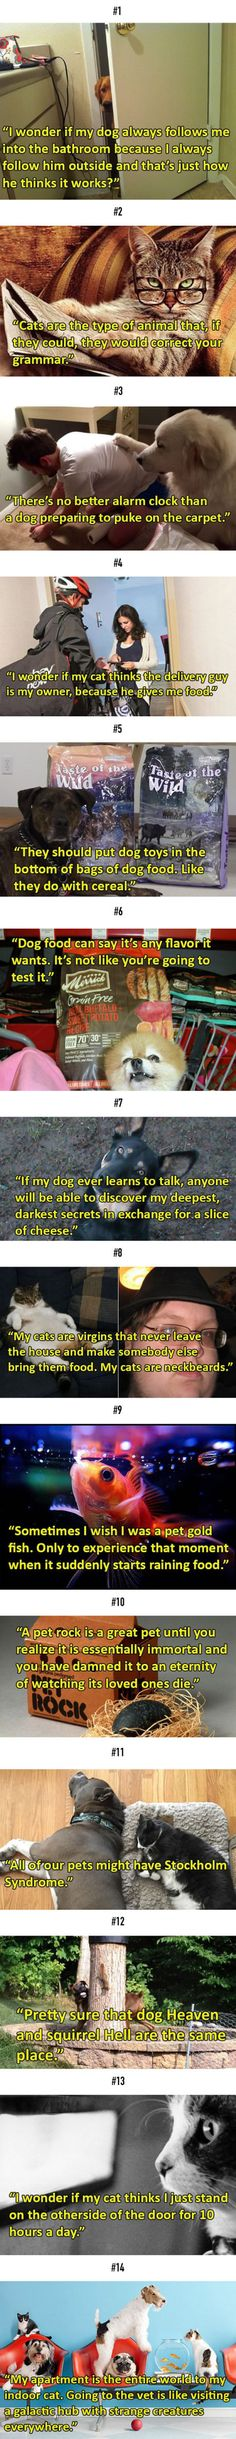 Animal Pictures and Photos: 14 Shower Thoughts That Perfectly Sum Up Pets